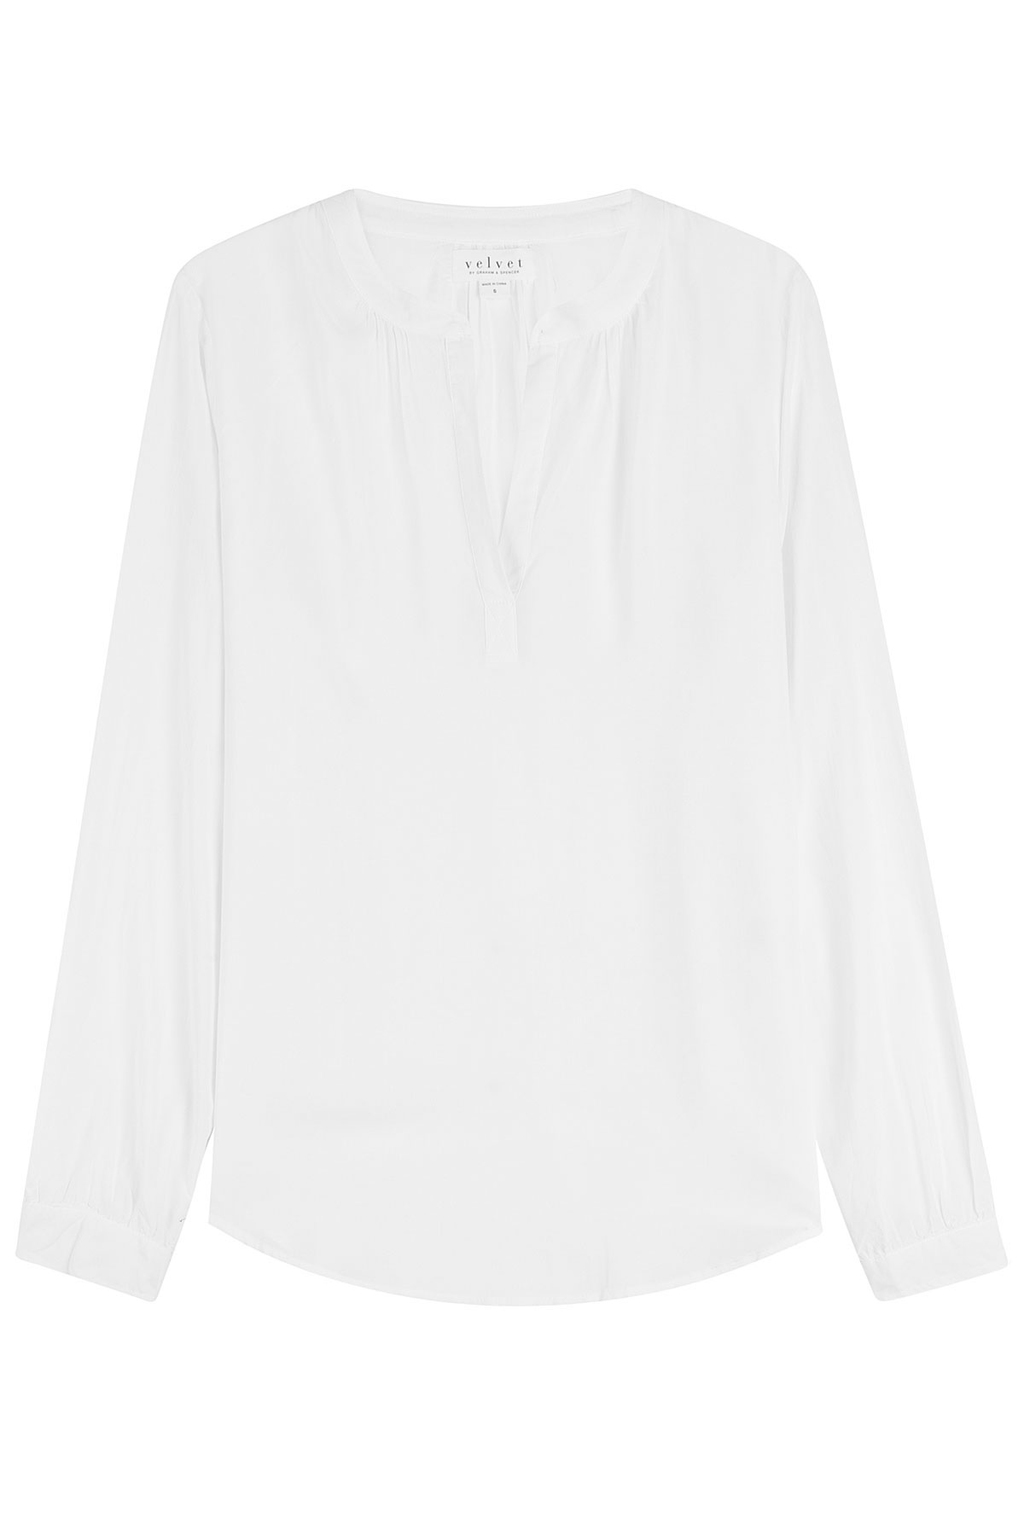 Fluid Blouse - pattern: plain; style: blouse; predominant colour: white; occasions: casual, creative work; length: standard; neckline: collarstand & mandarin with v-neck; fibres: viscose/rayon - 100%; fit: loose; sleeve length: long sleeve; sleeve style: standard; pattern type: fabric; texture group: jersey - stretchy/drapey; wardrobe: basic; season: a/w 2016